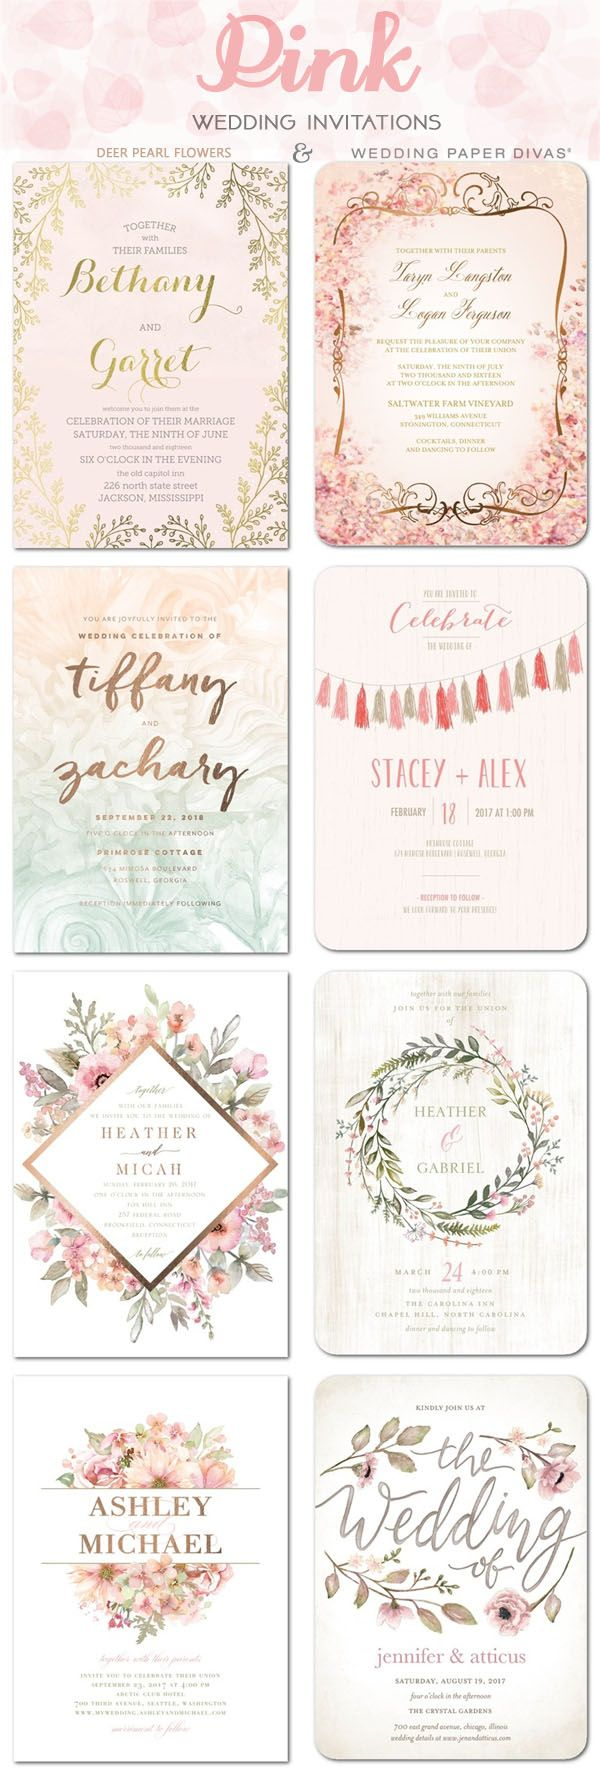 Pink wedding color ideas - Pink wedding invitations / http://www.deerpearlflowers.com/wedding-paper-divas-wedding-invitations/2/